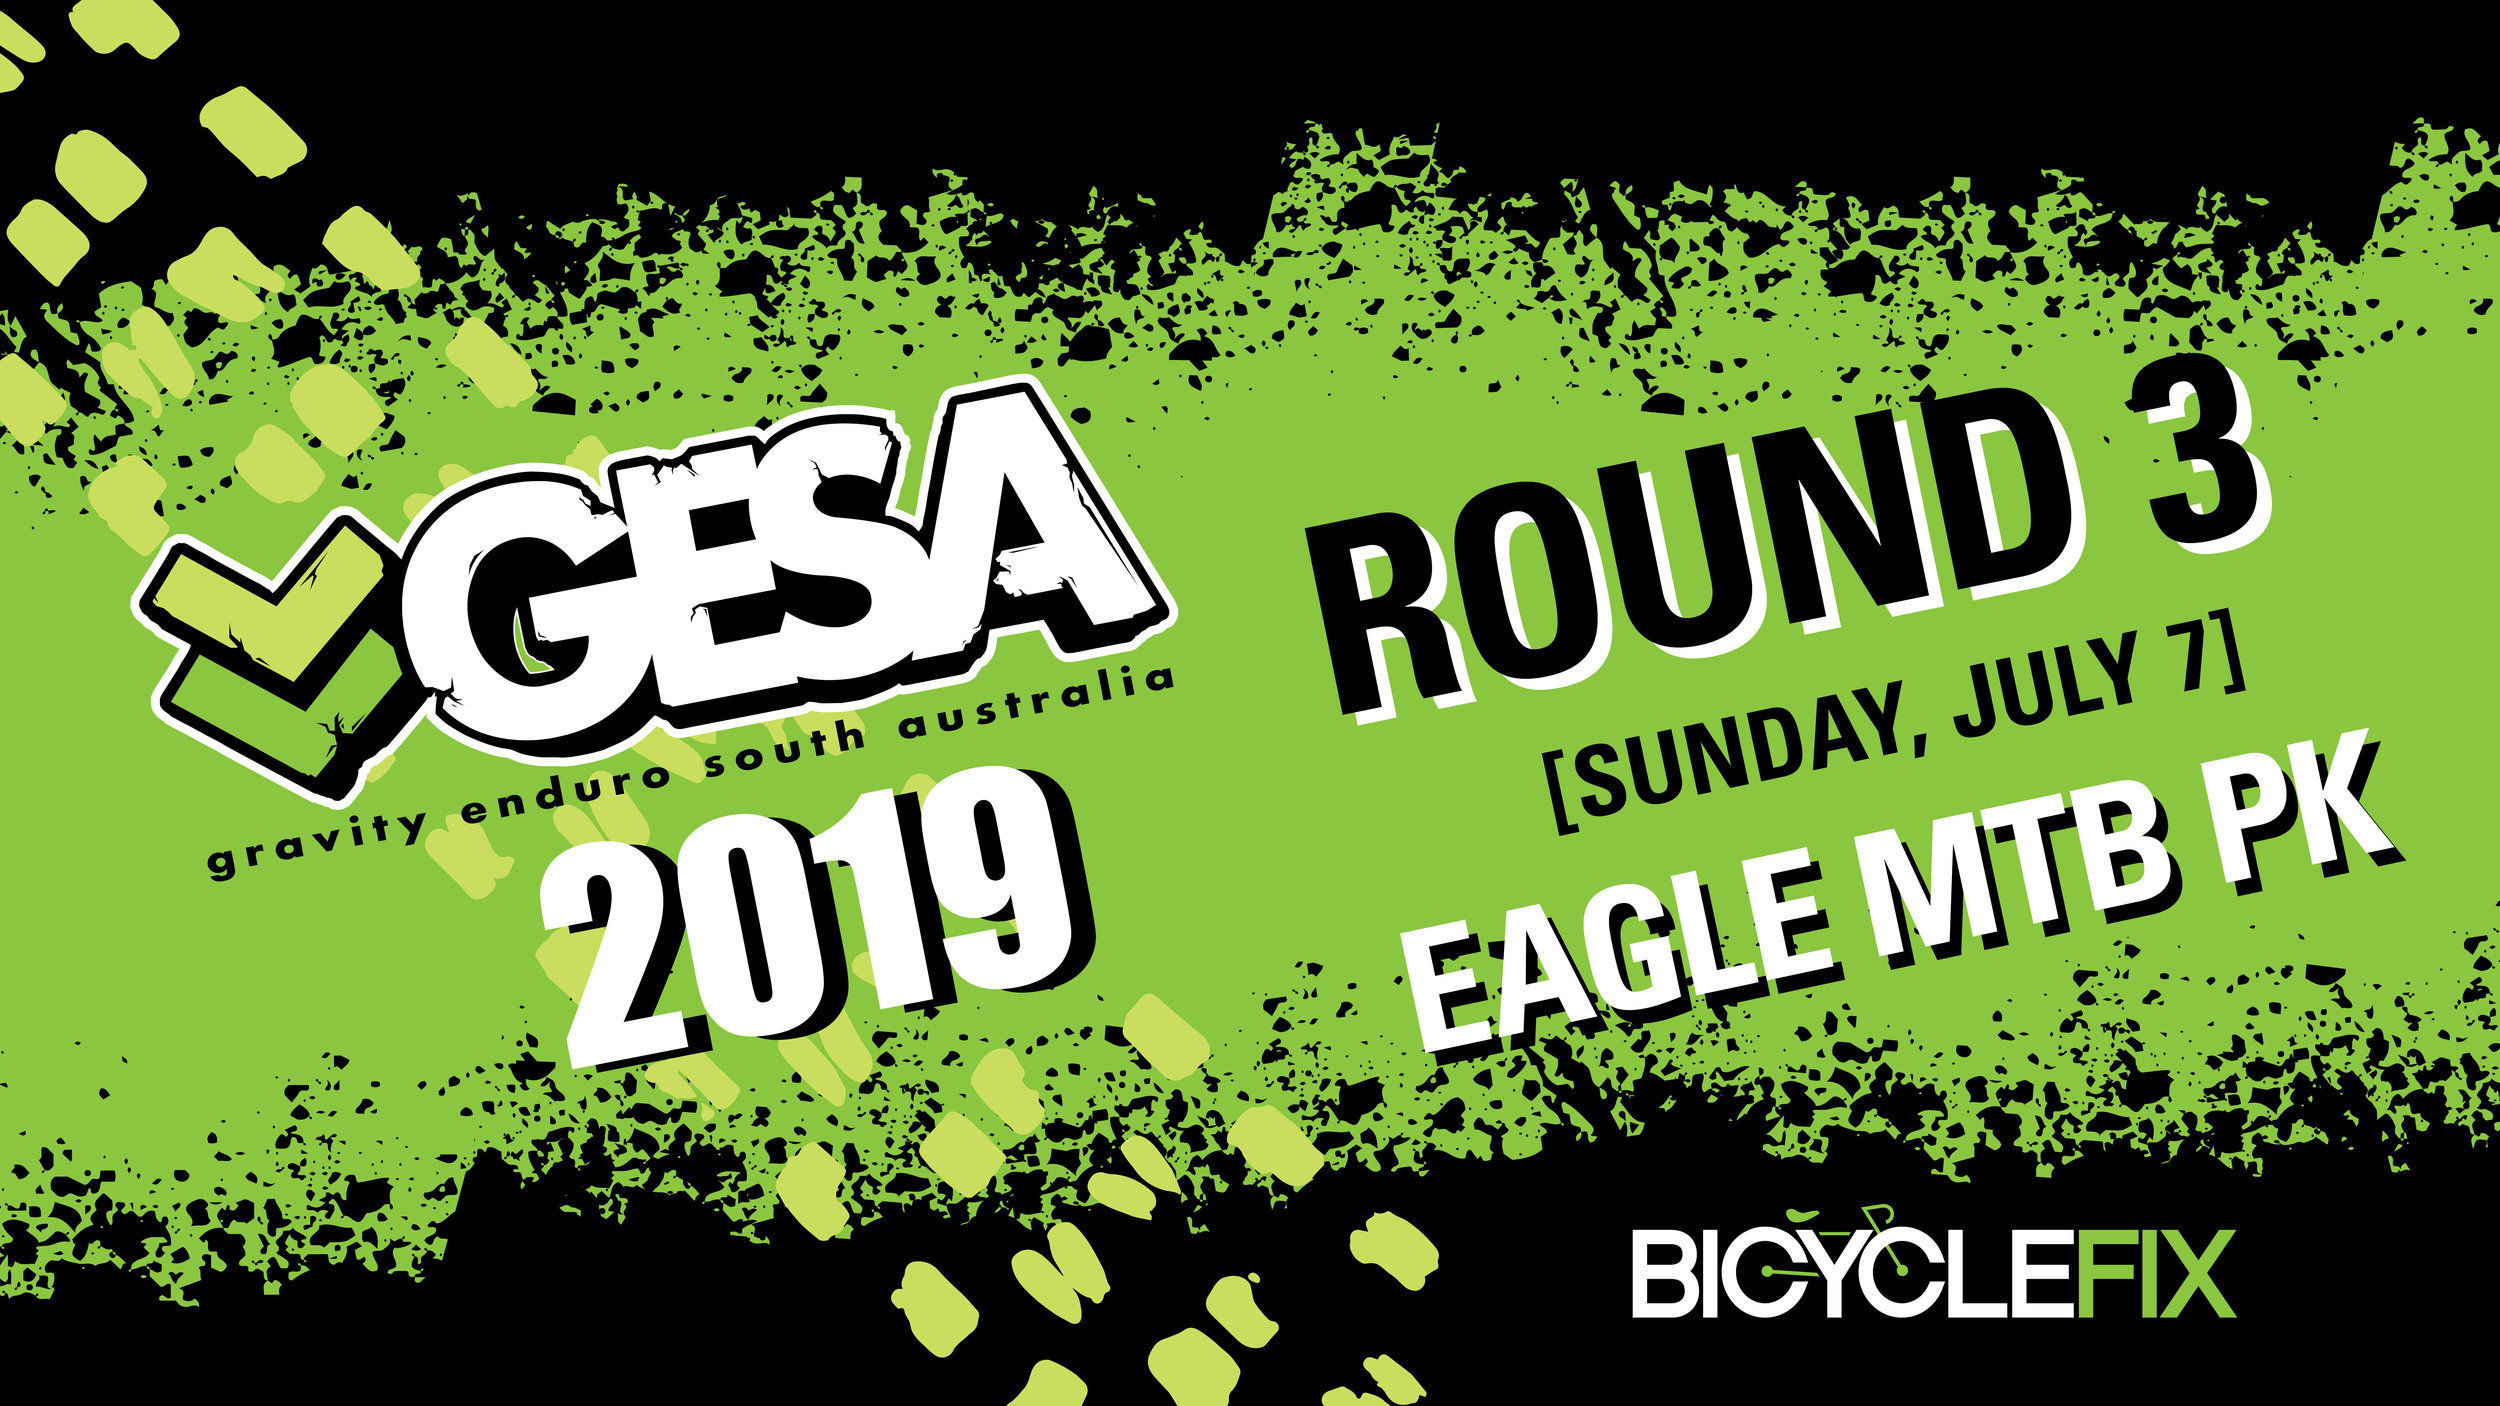 Gesa_Fb-Event-Cover-page--rounds-3_Eagle.jpg